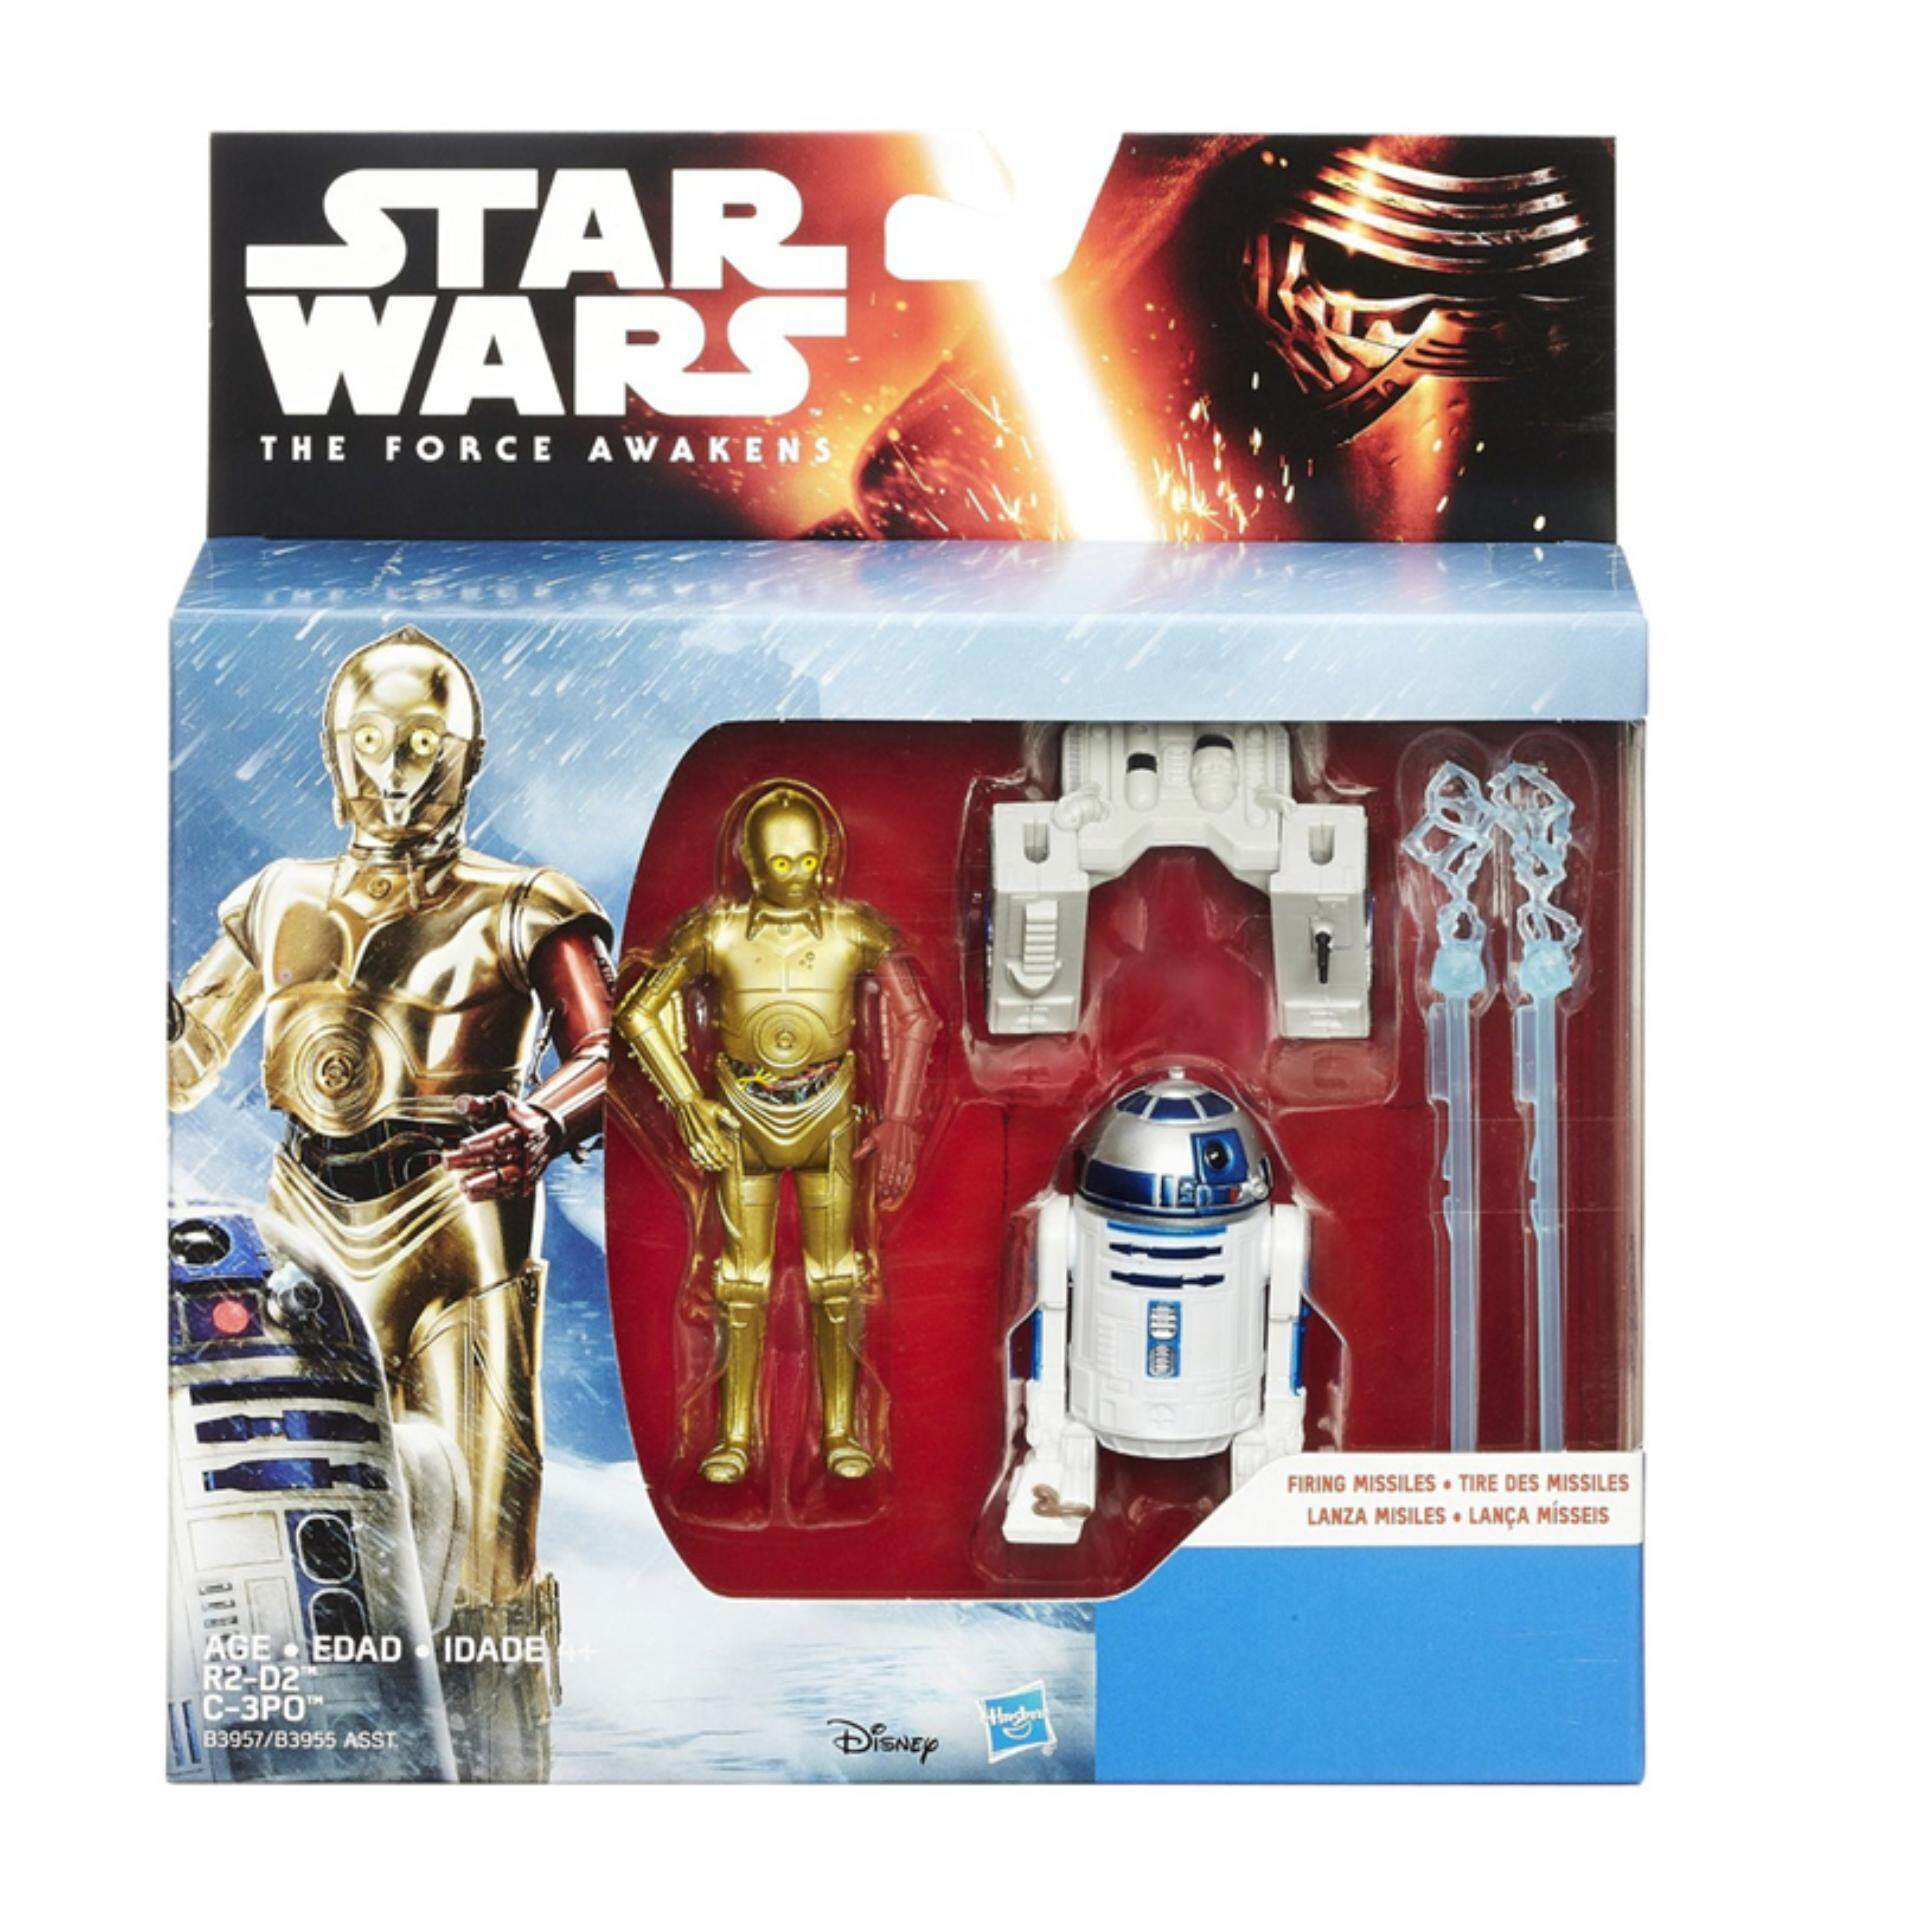 Disney Star Wars E7 3.75 Inches Figures - C3PO & R2-D2 Toys for boys